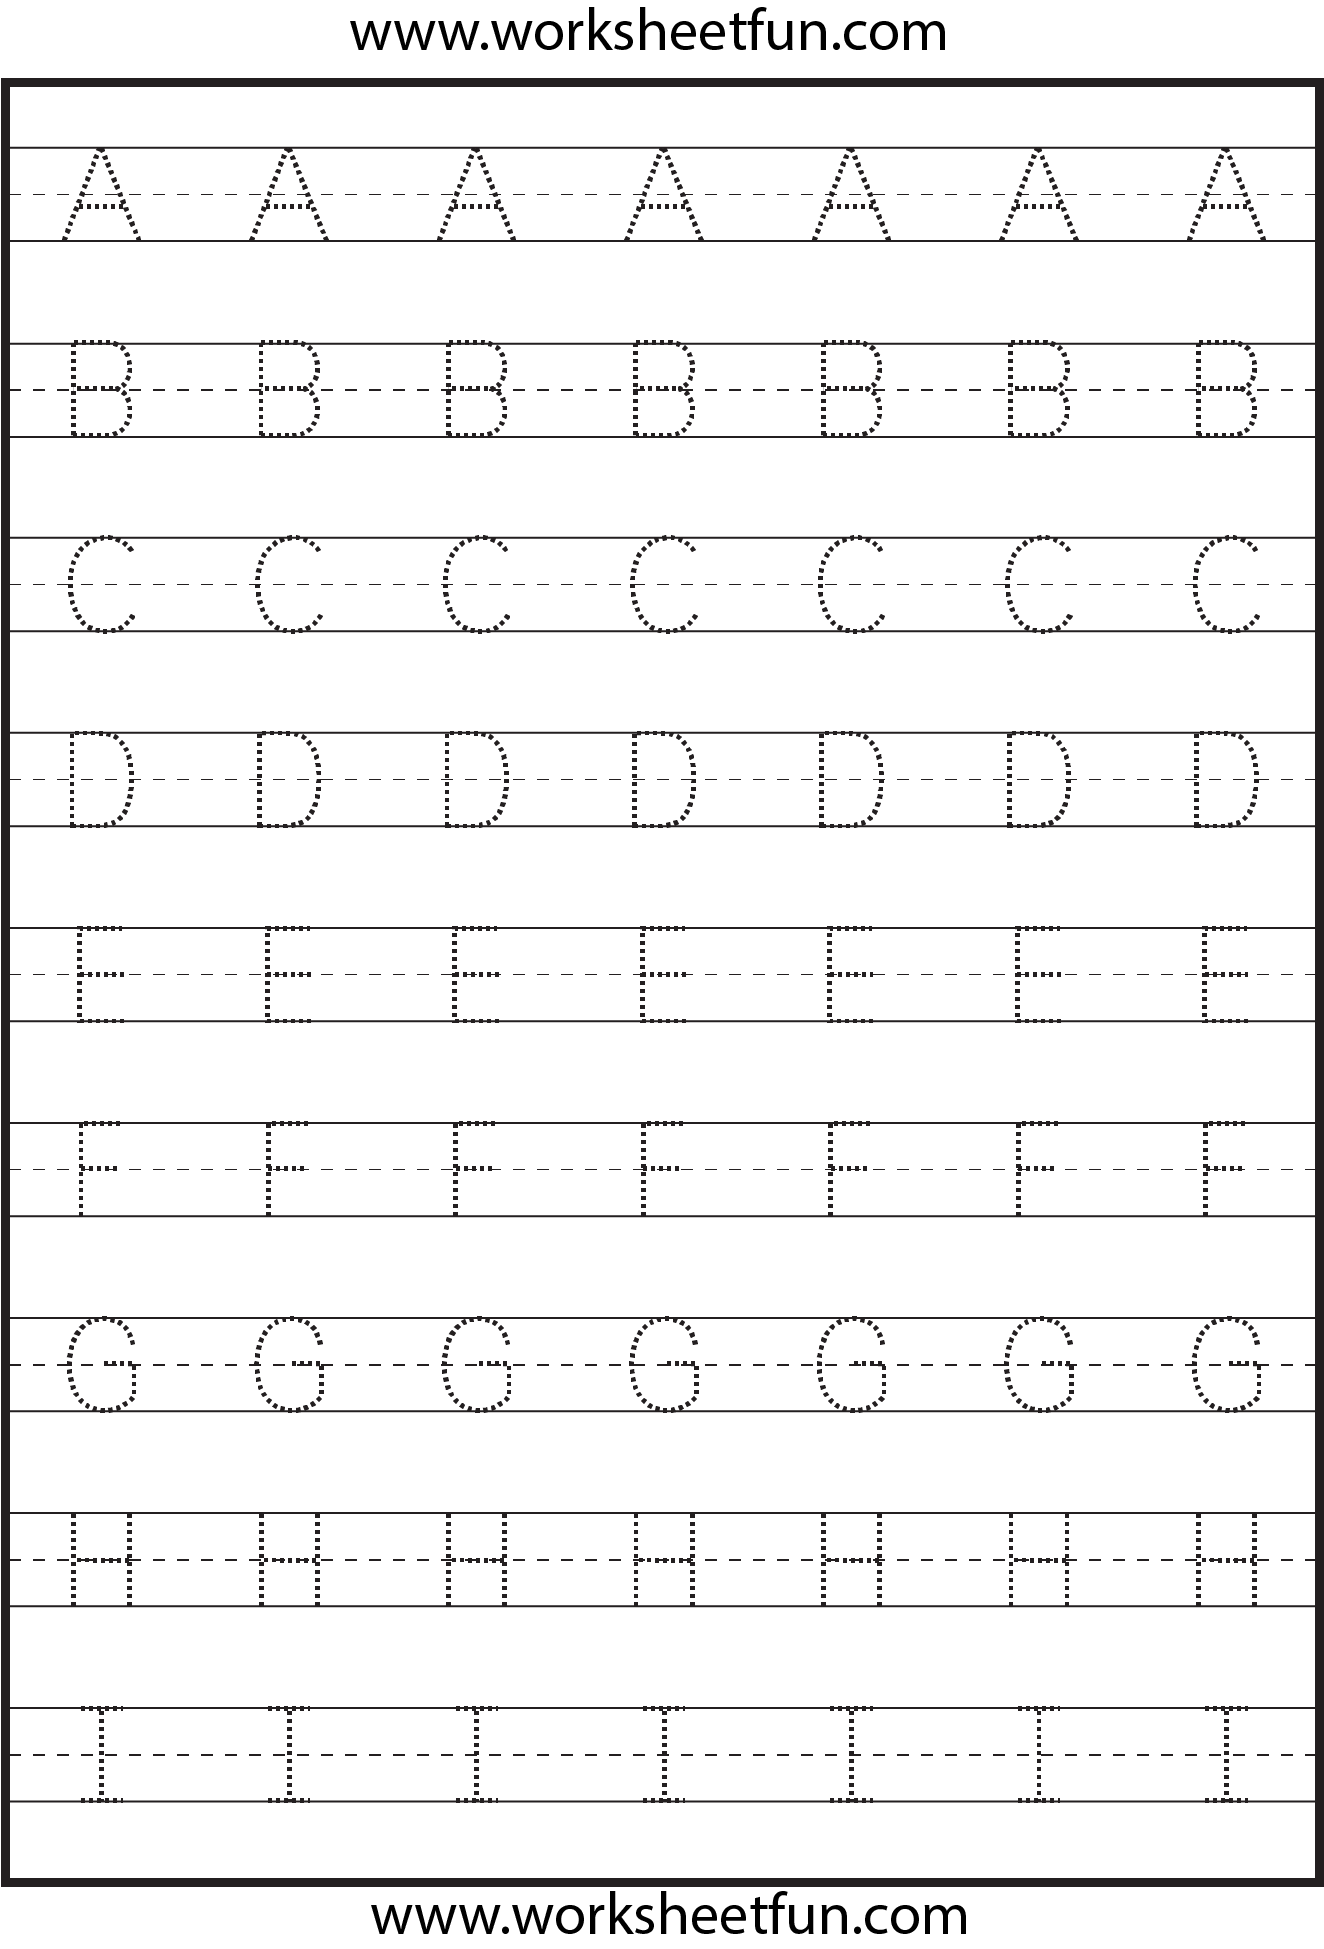 Worksheets Free Letter Tracing Worksheets tracing uppercase letters capital 3 worksheets letter tracing